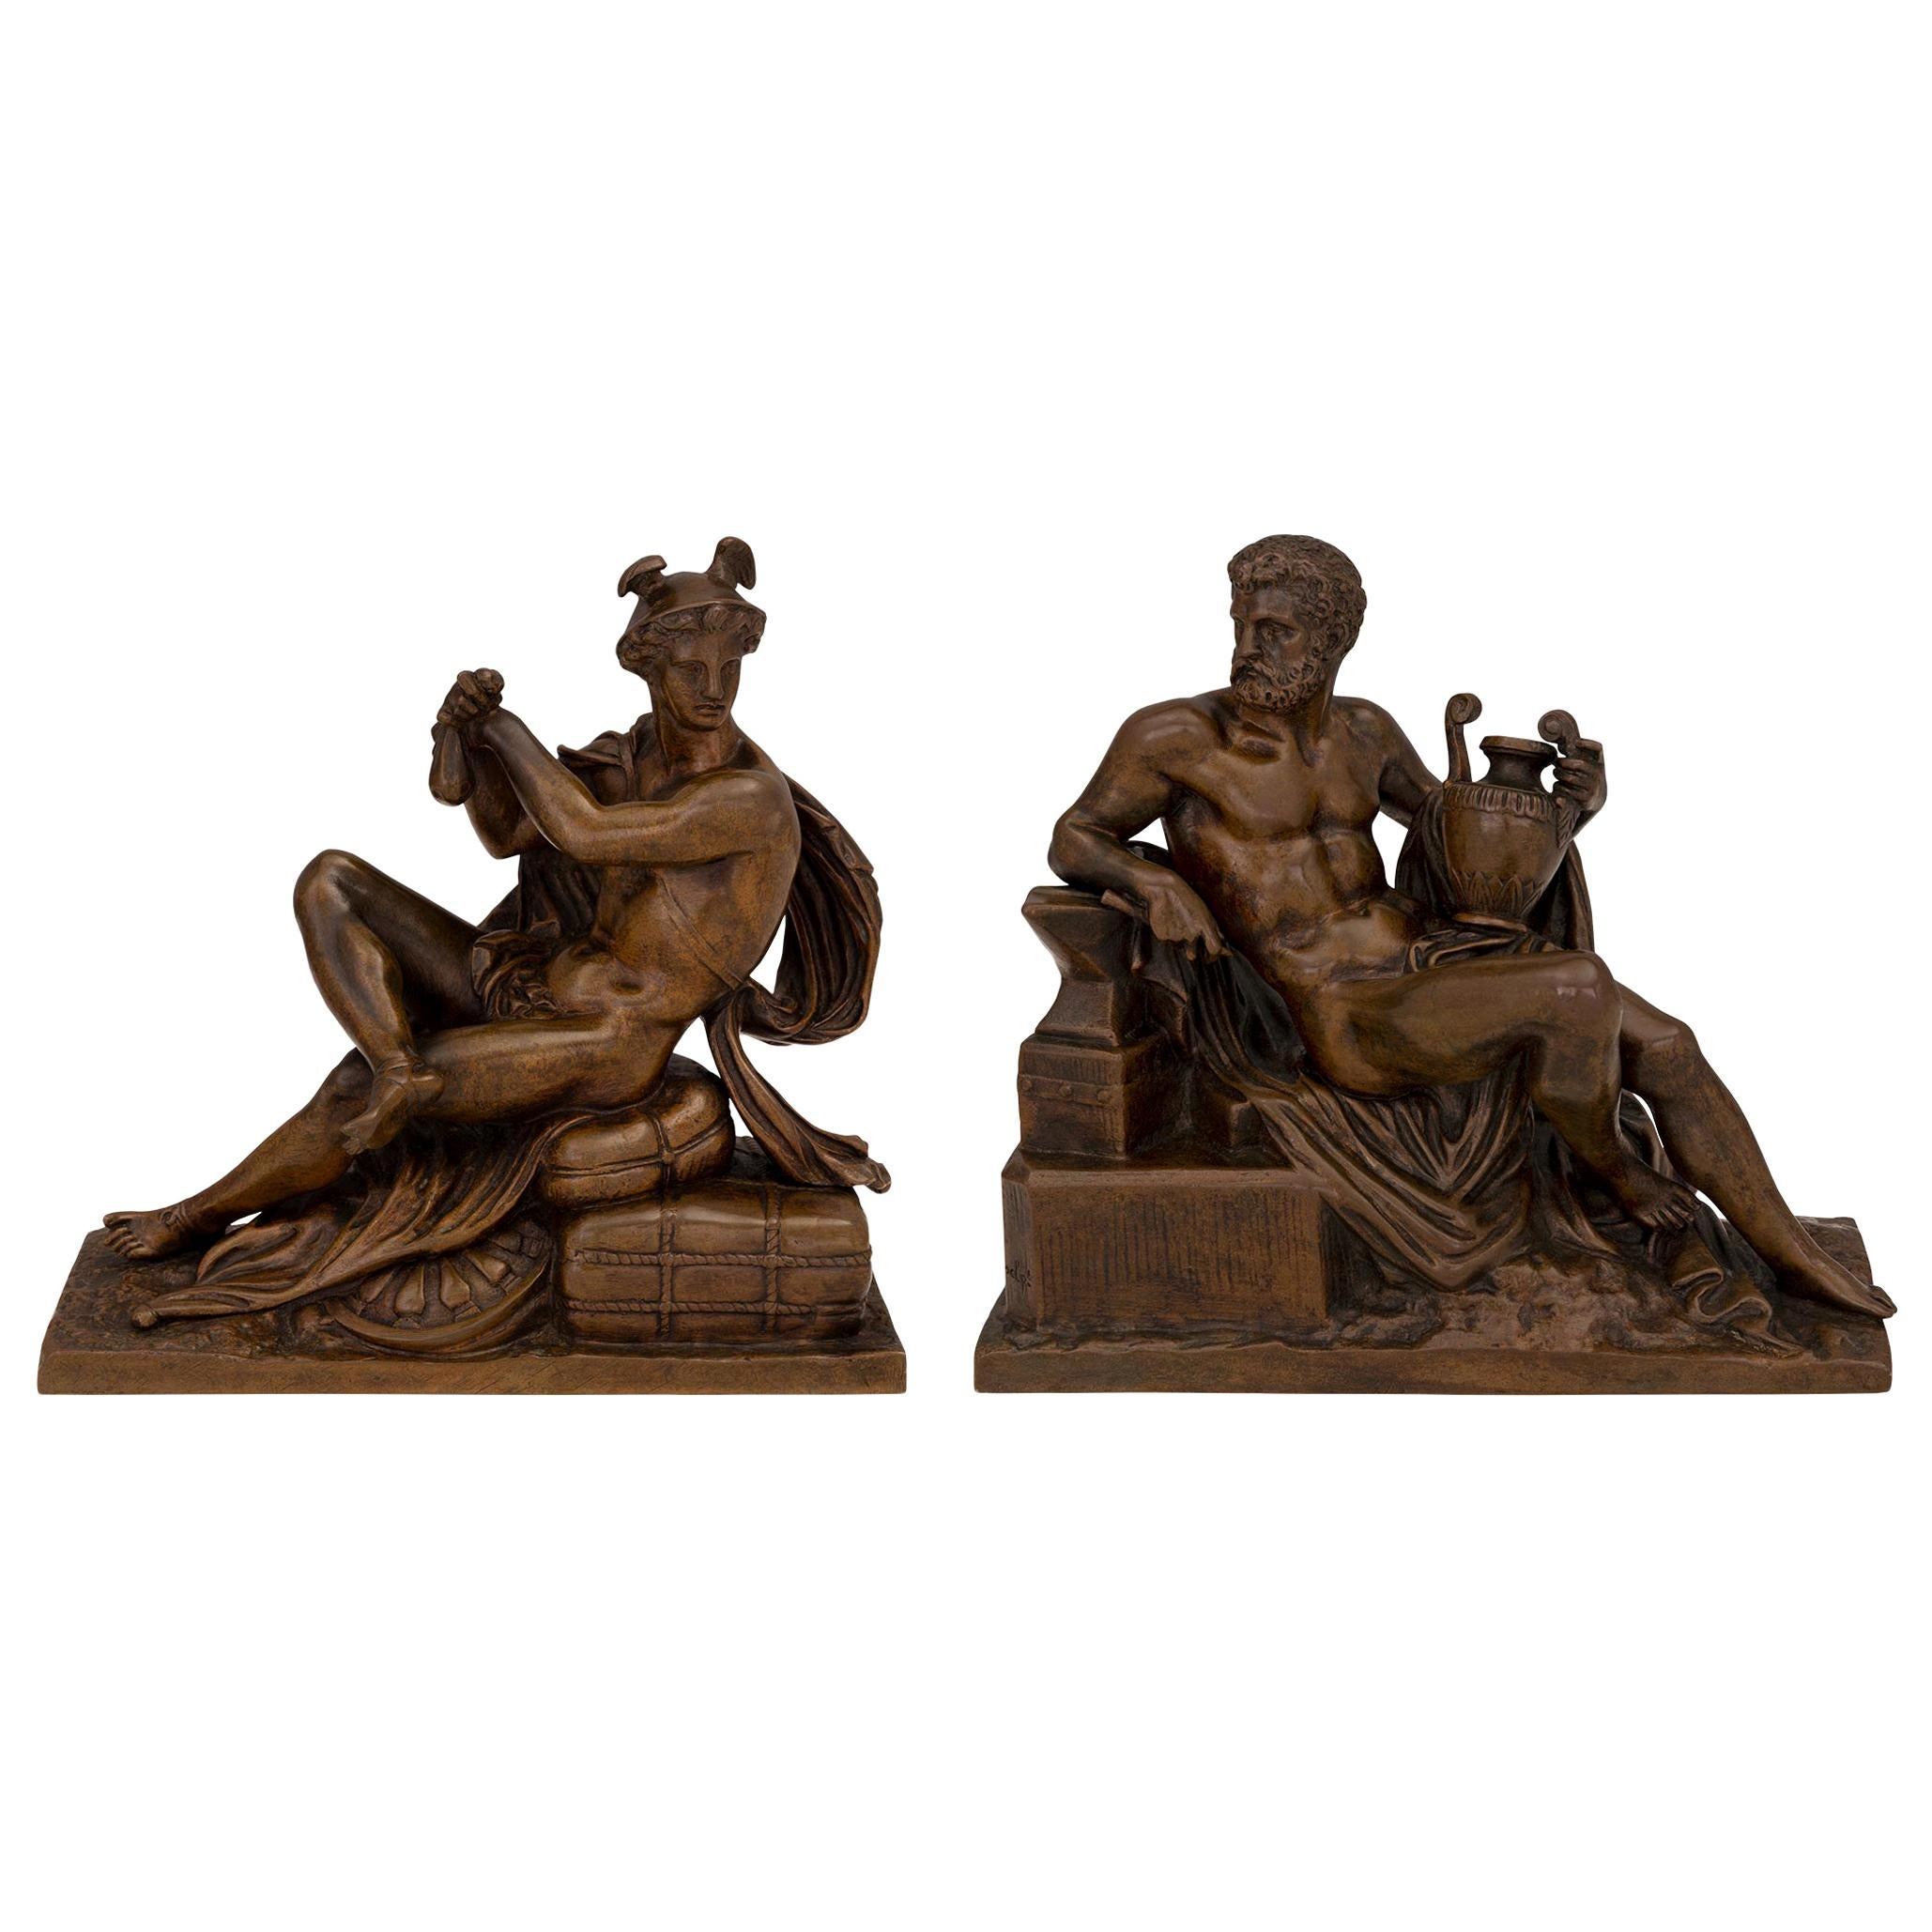 Pair of French 19th Century Neoclassical St. Patinated Bronze Statues